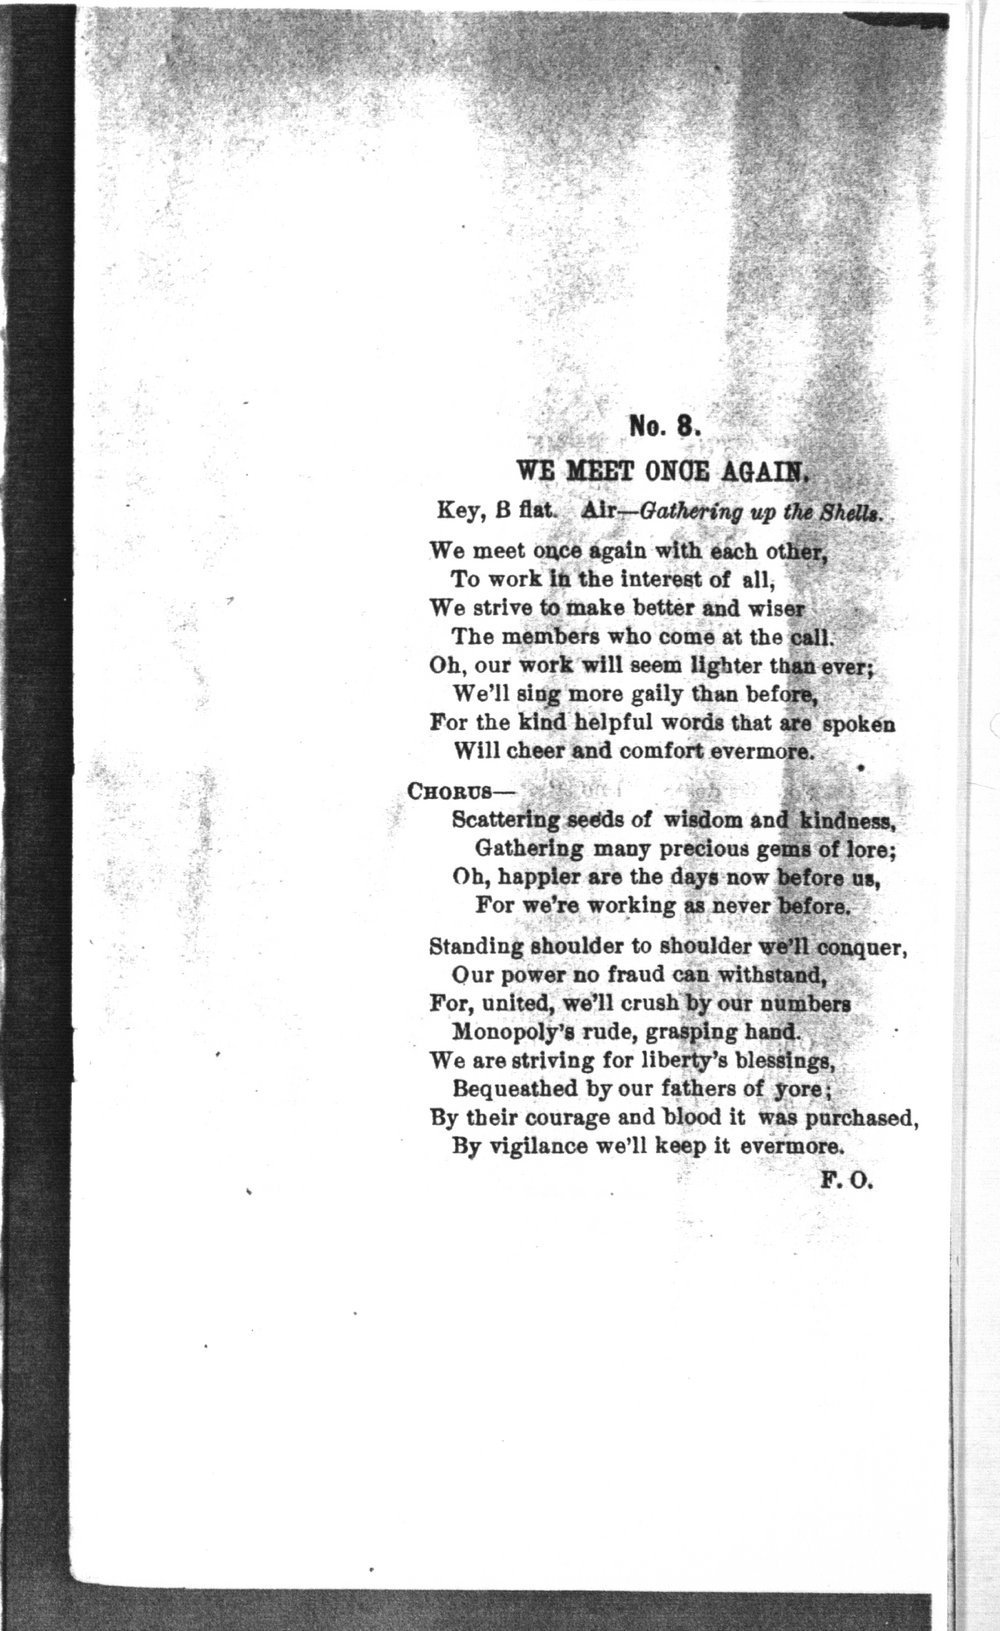 The mite:  Farmers' and Laborers' Union songs for national, state, county and subordinate unions - No. 8